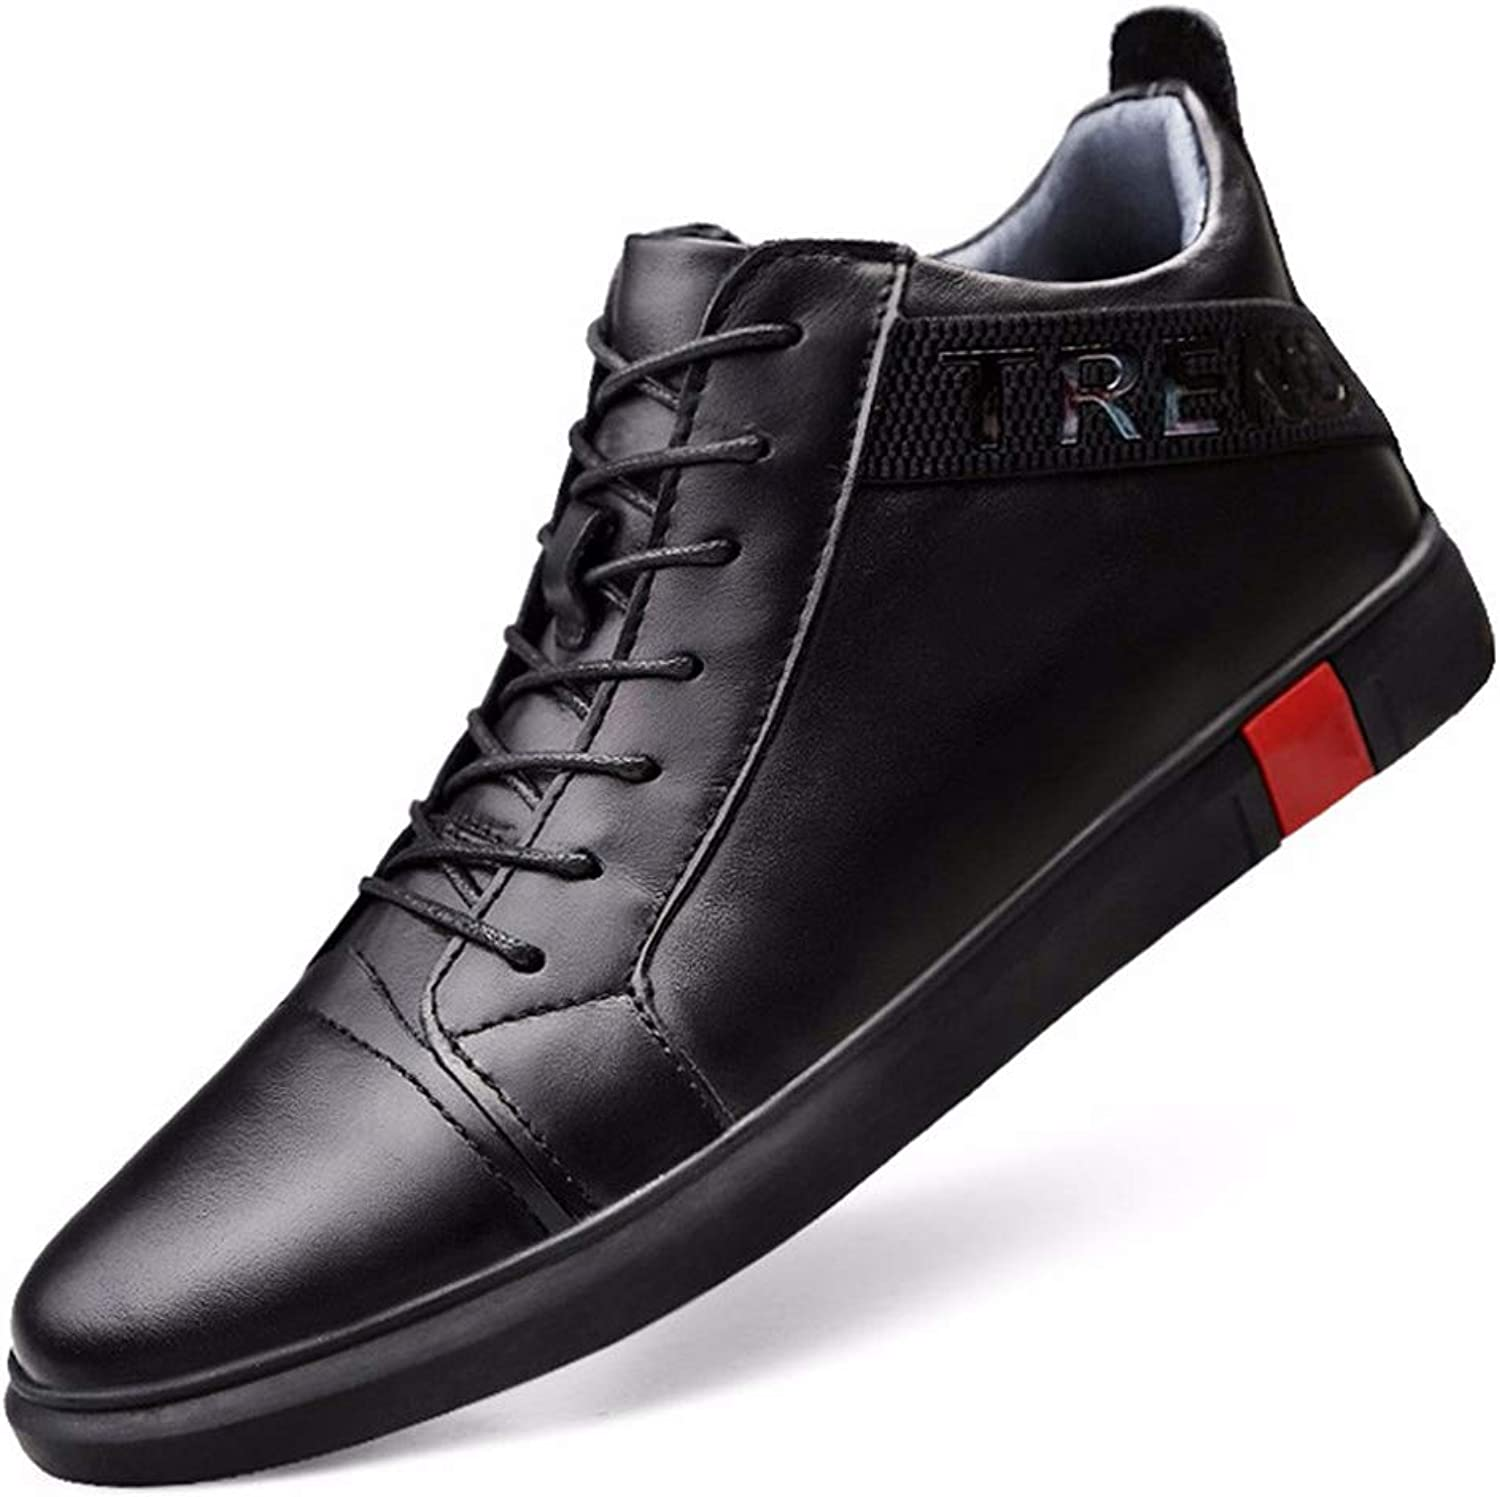 Leather Men's shoes Winter New Real Leather Men's Casual shoes in The High-top shoes Men's Casual shoes Black (color   Black, Size   47)